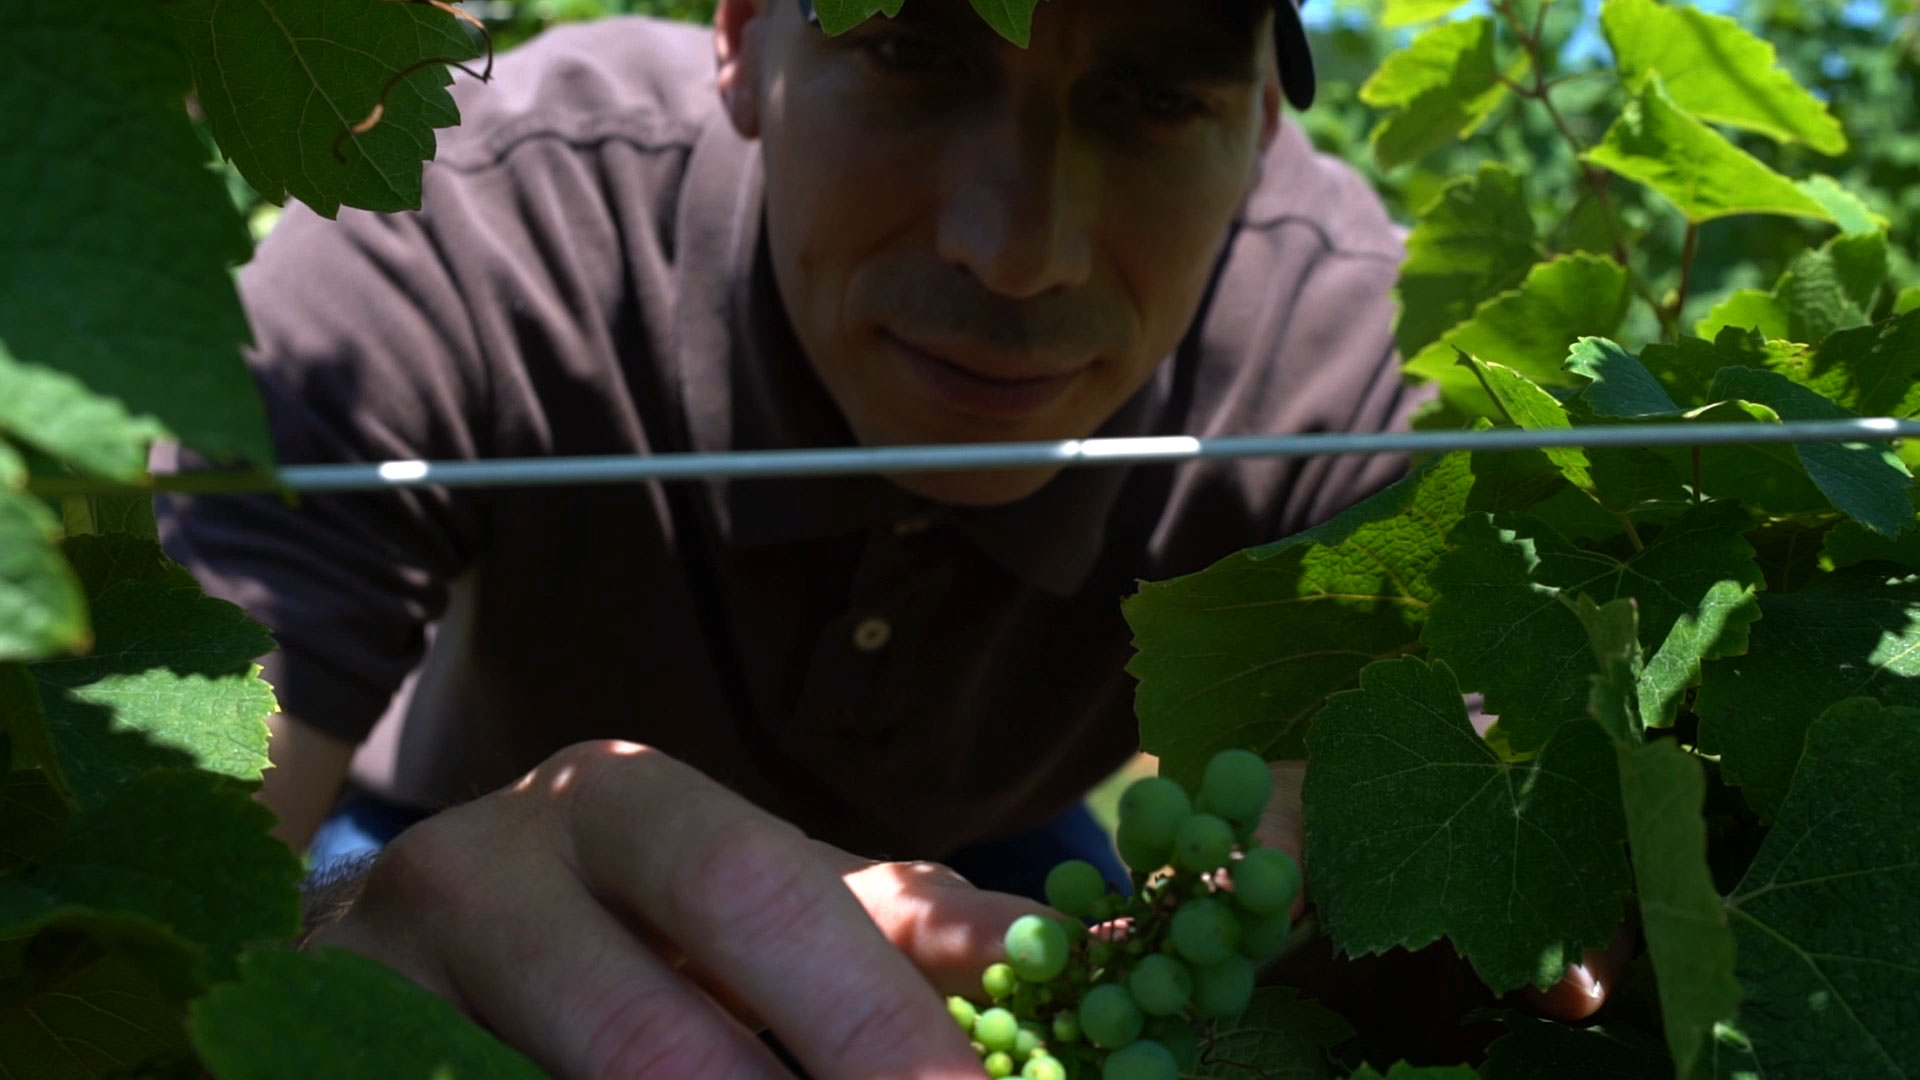 Mount Nittany Winery's Scott Hilliker examines grapes on a vine